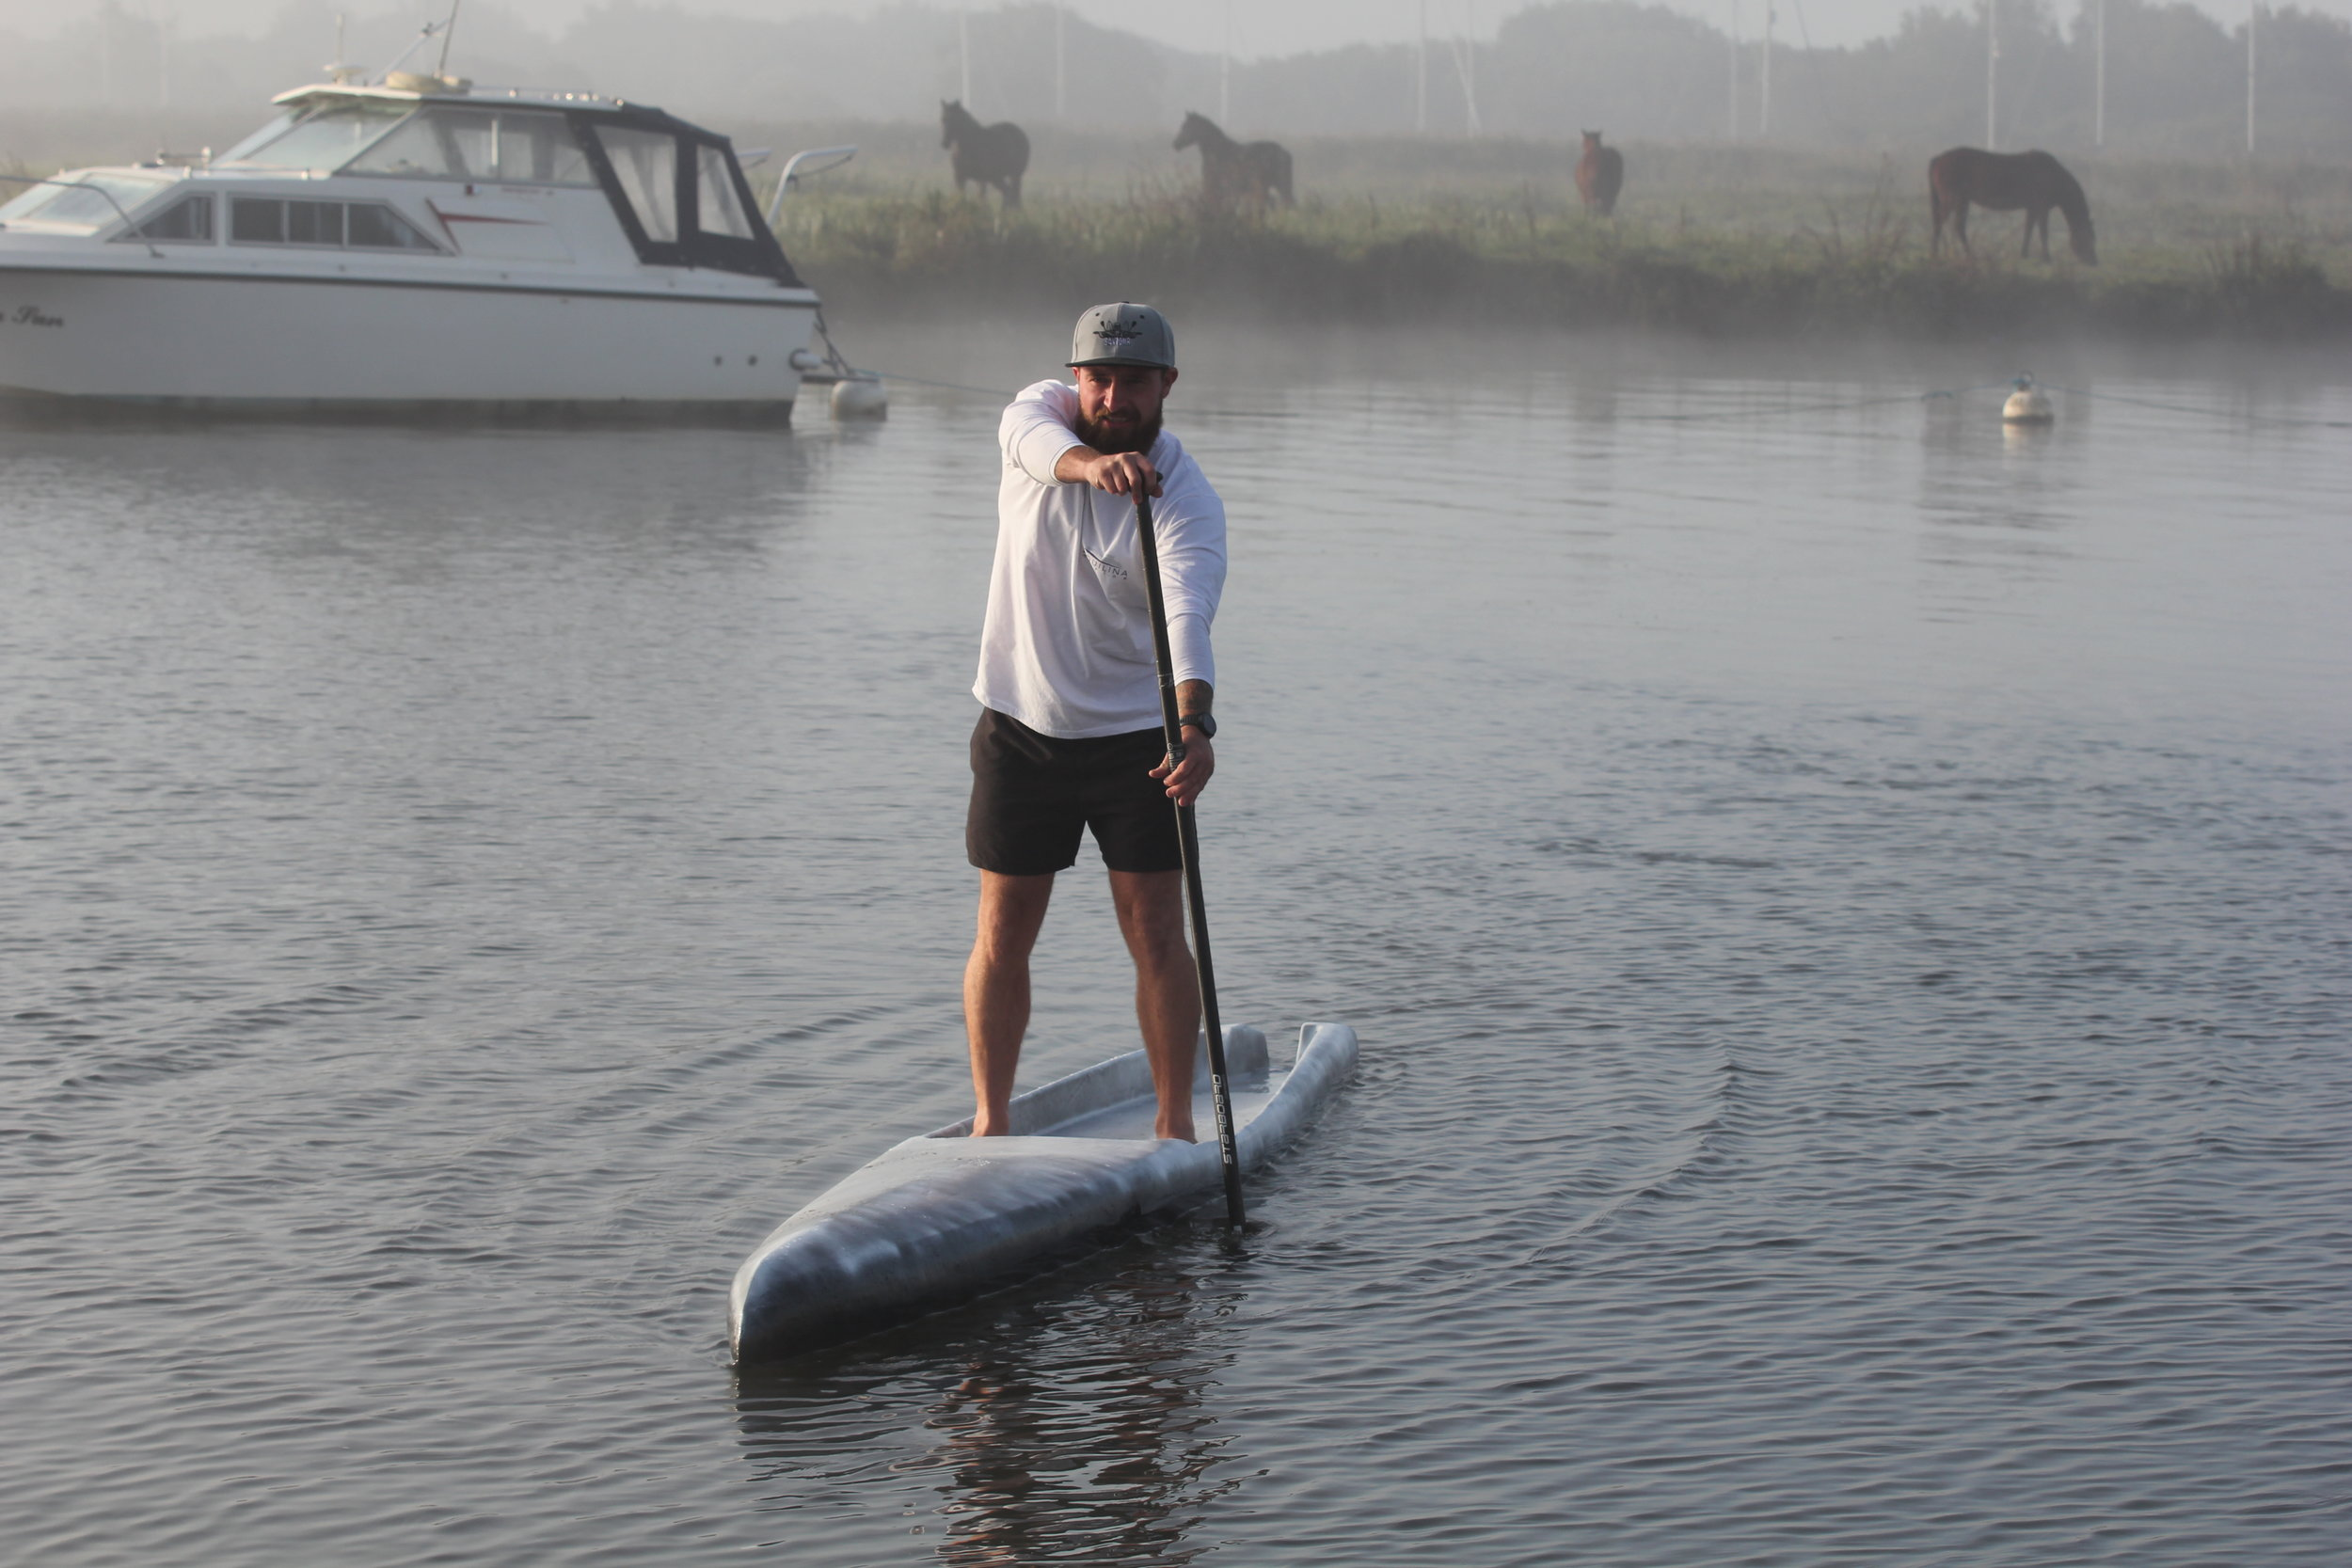 Saviour Testing the new 'stealth bomber' race SUP. Photo - Andy White / September 2018